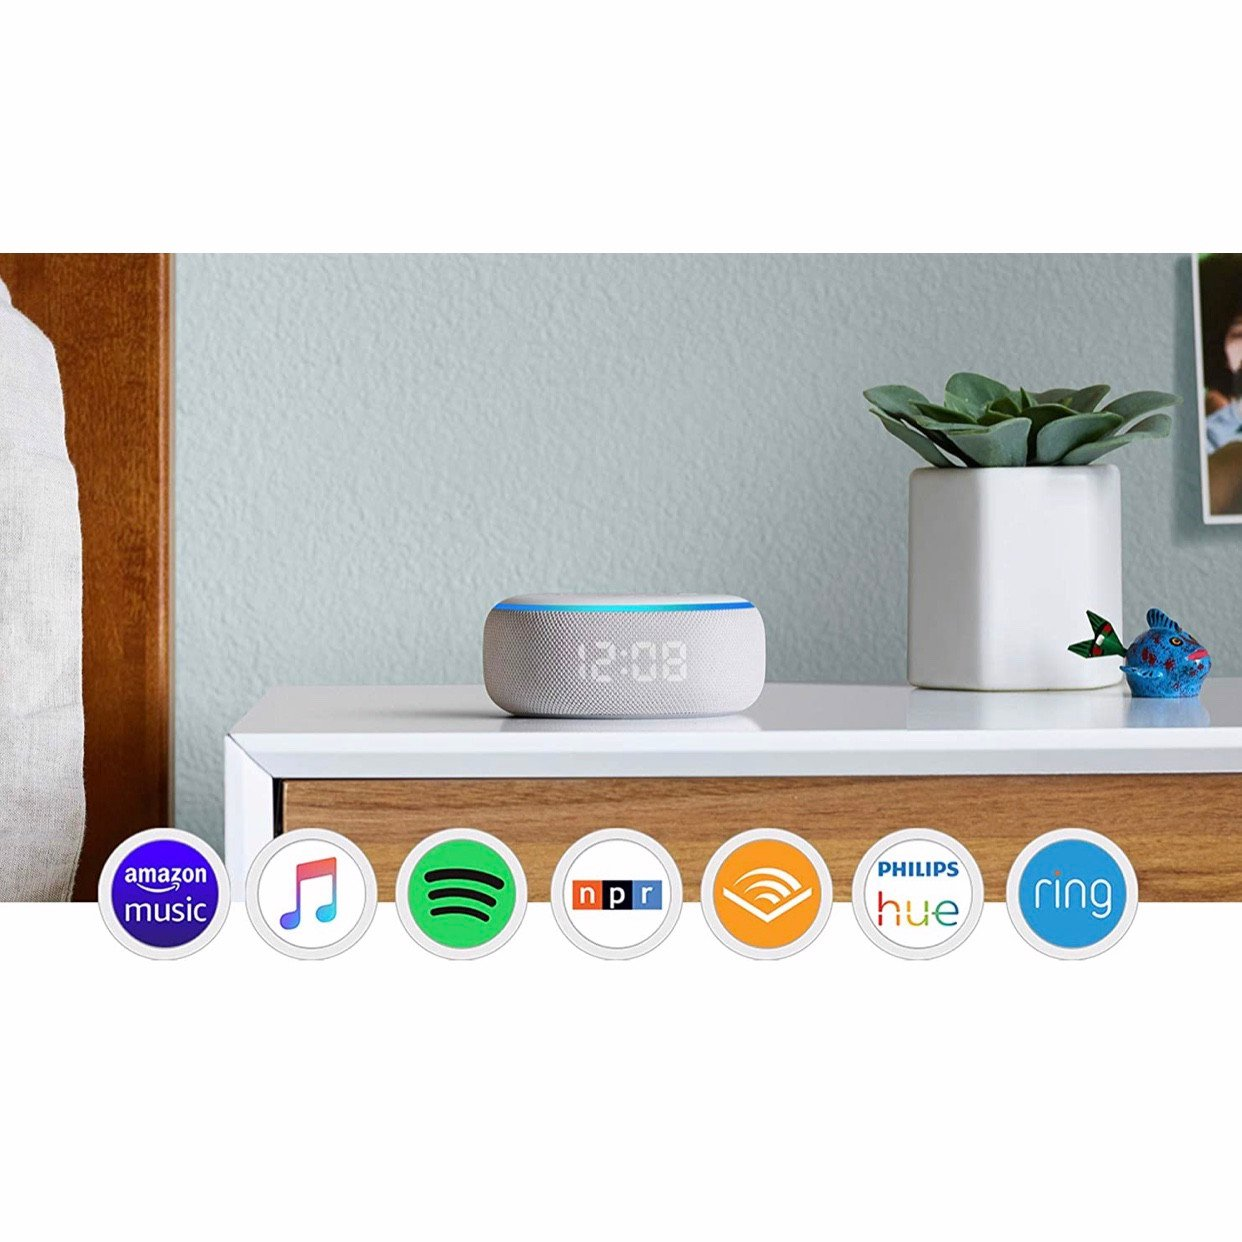 Loa thông minh Smart speaker with clock and Alexa